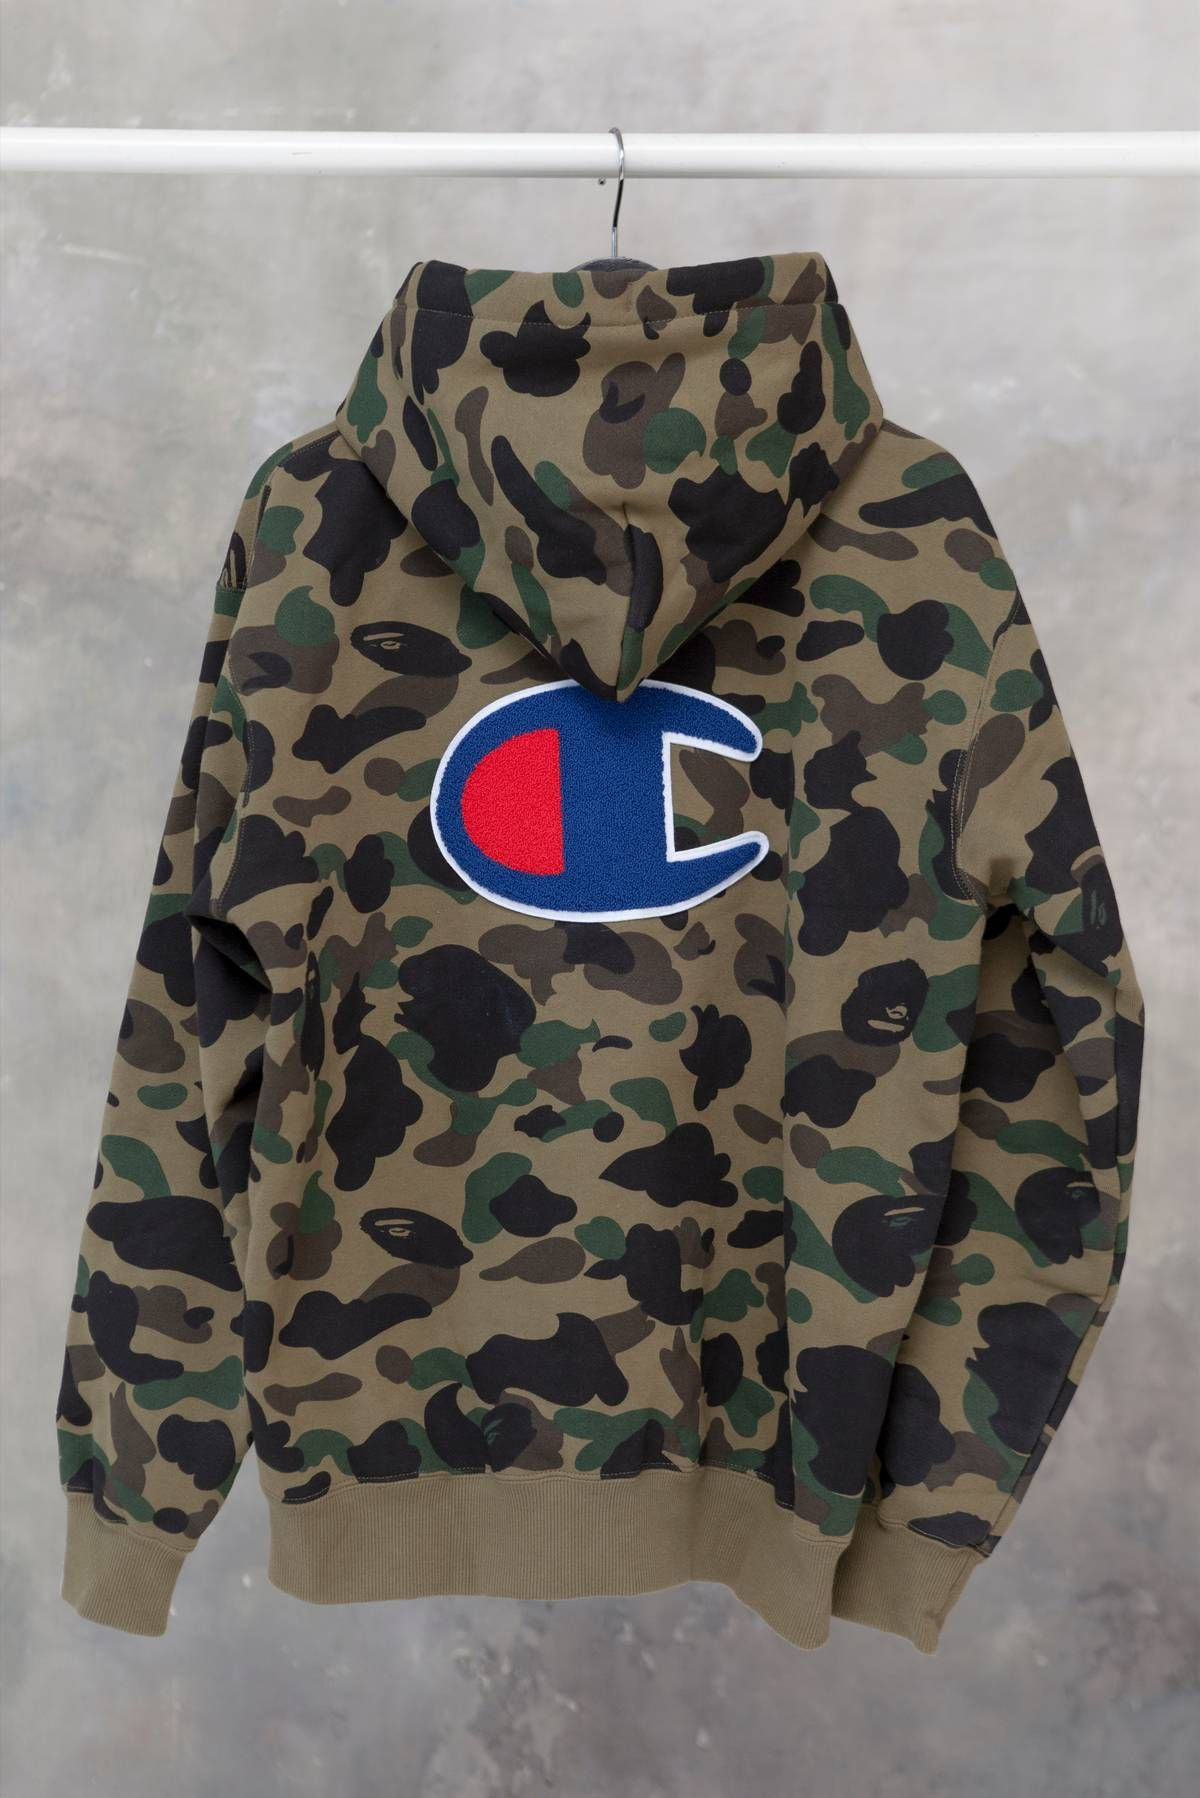 6dc364810d639 Bape A Bathing Ape Bape x Champion 1st Camo Zip Hoodie 16FW Size xl -  Sweatshirts & Hoodies for Sale - Grailed